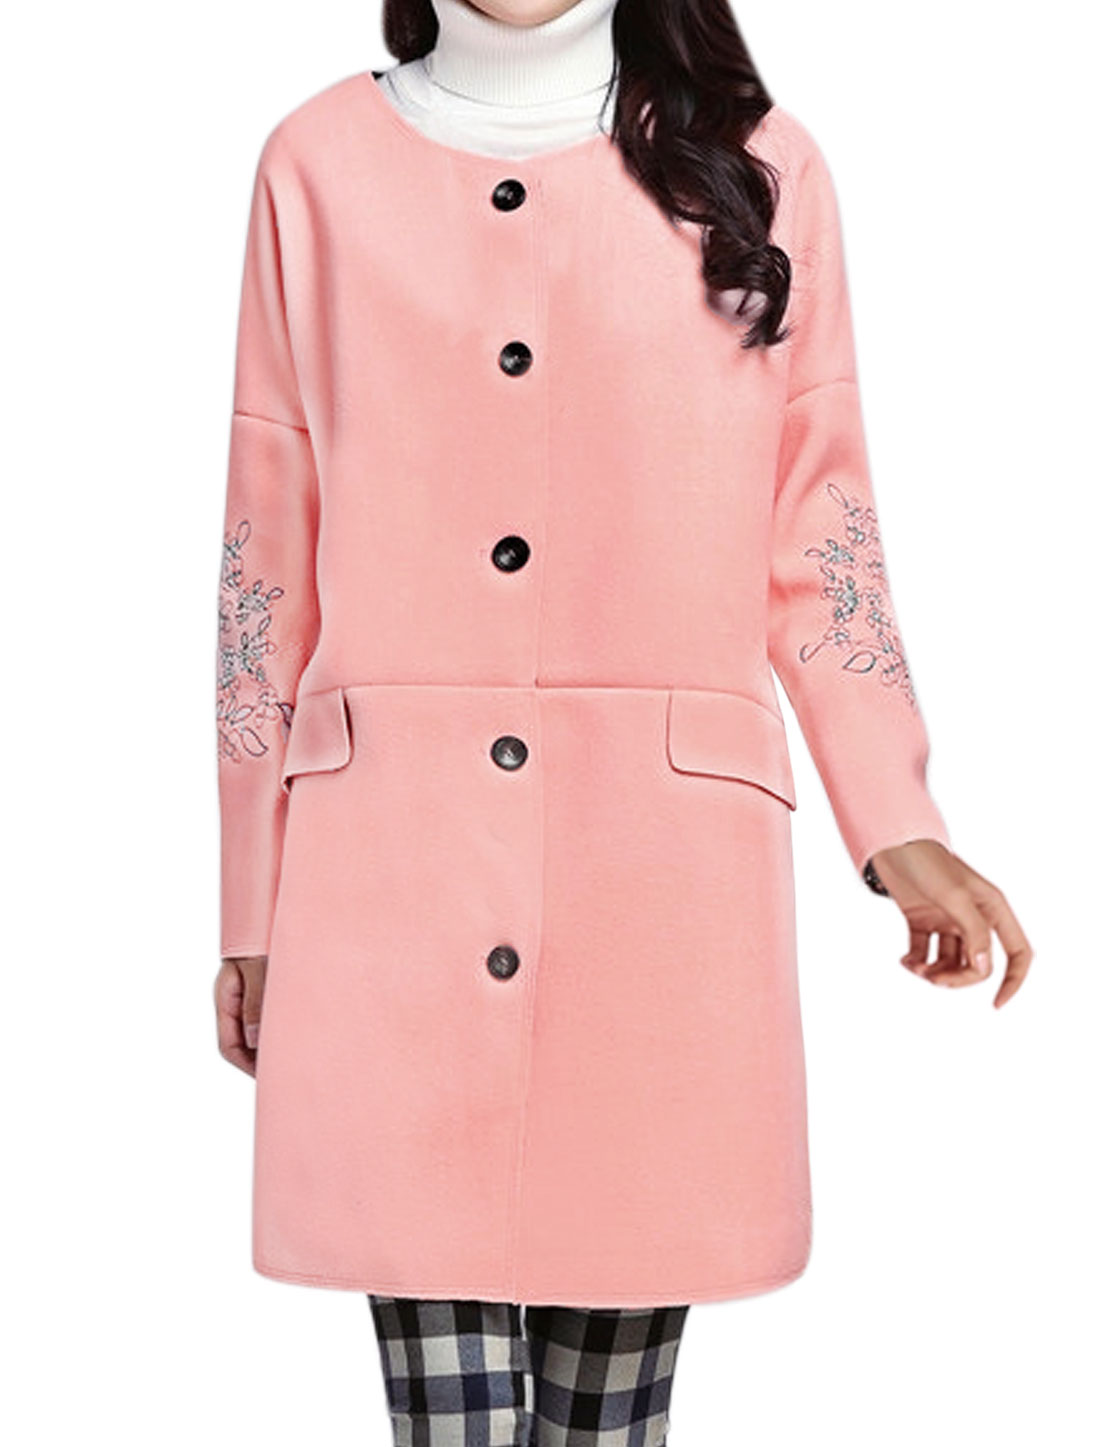 Women Round Neck Floral Stitching Button Front Worsted Coat Pink XS